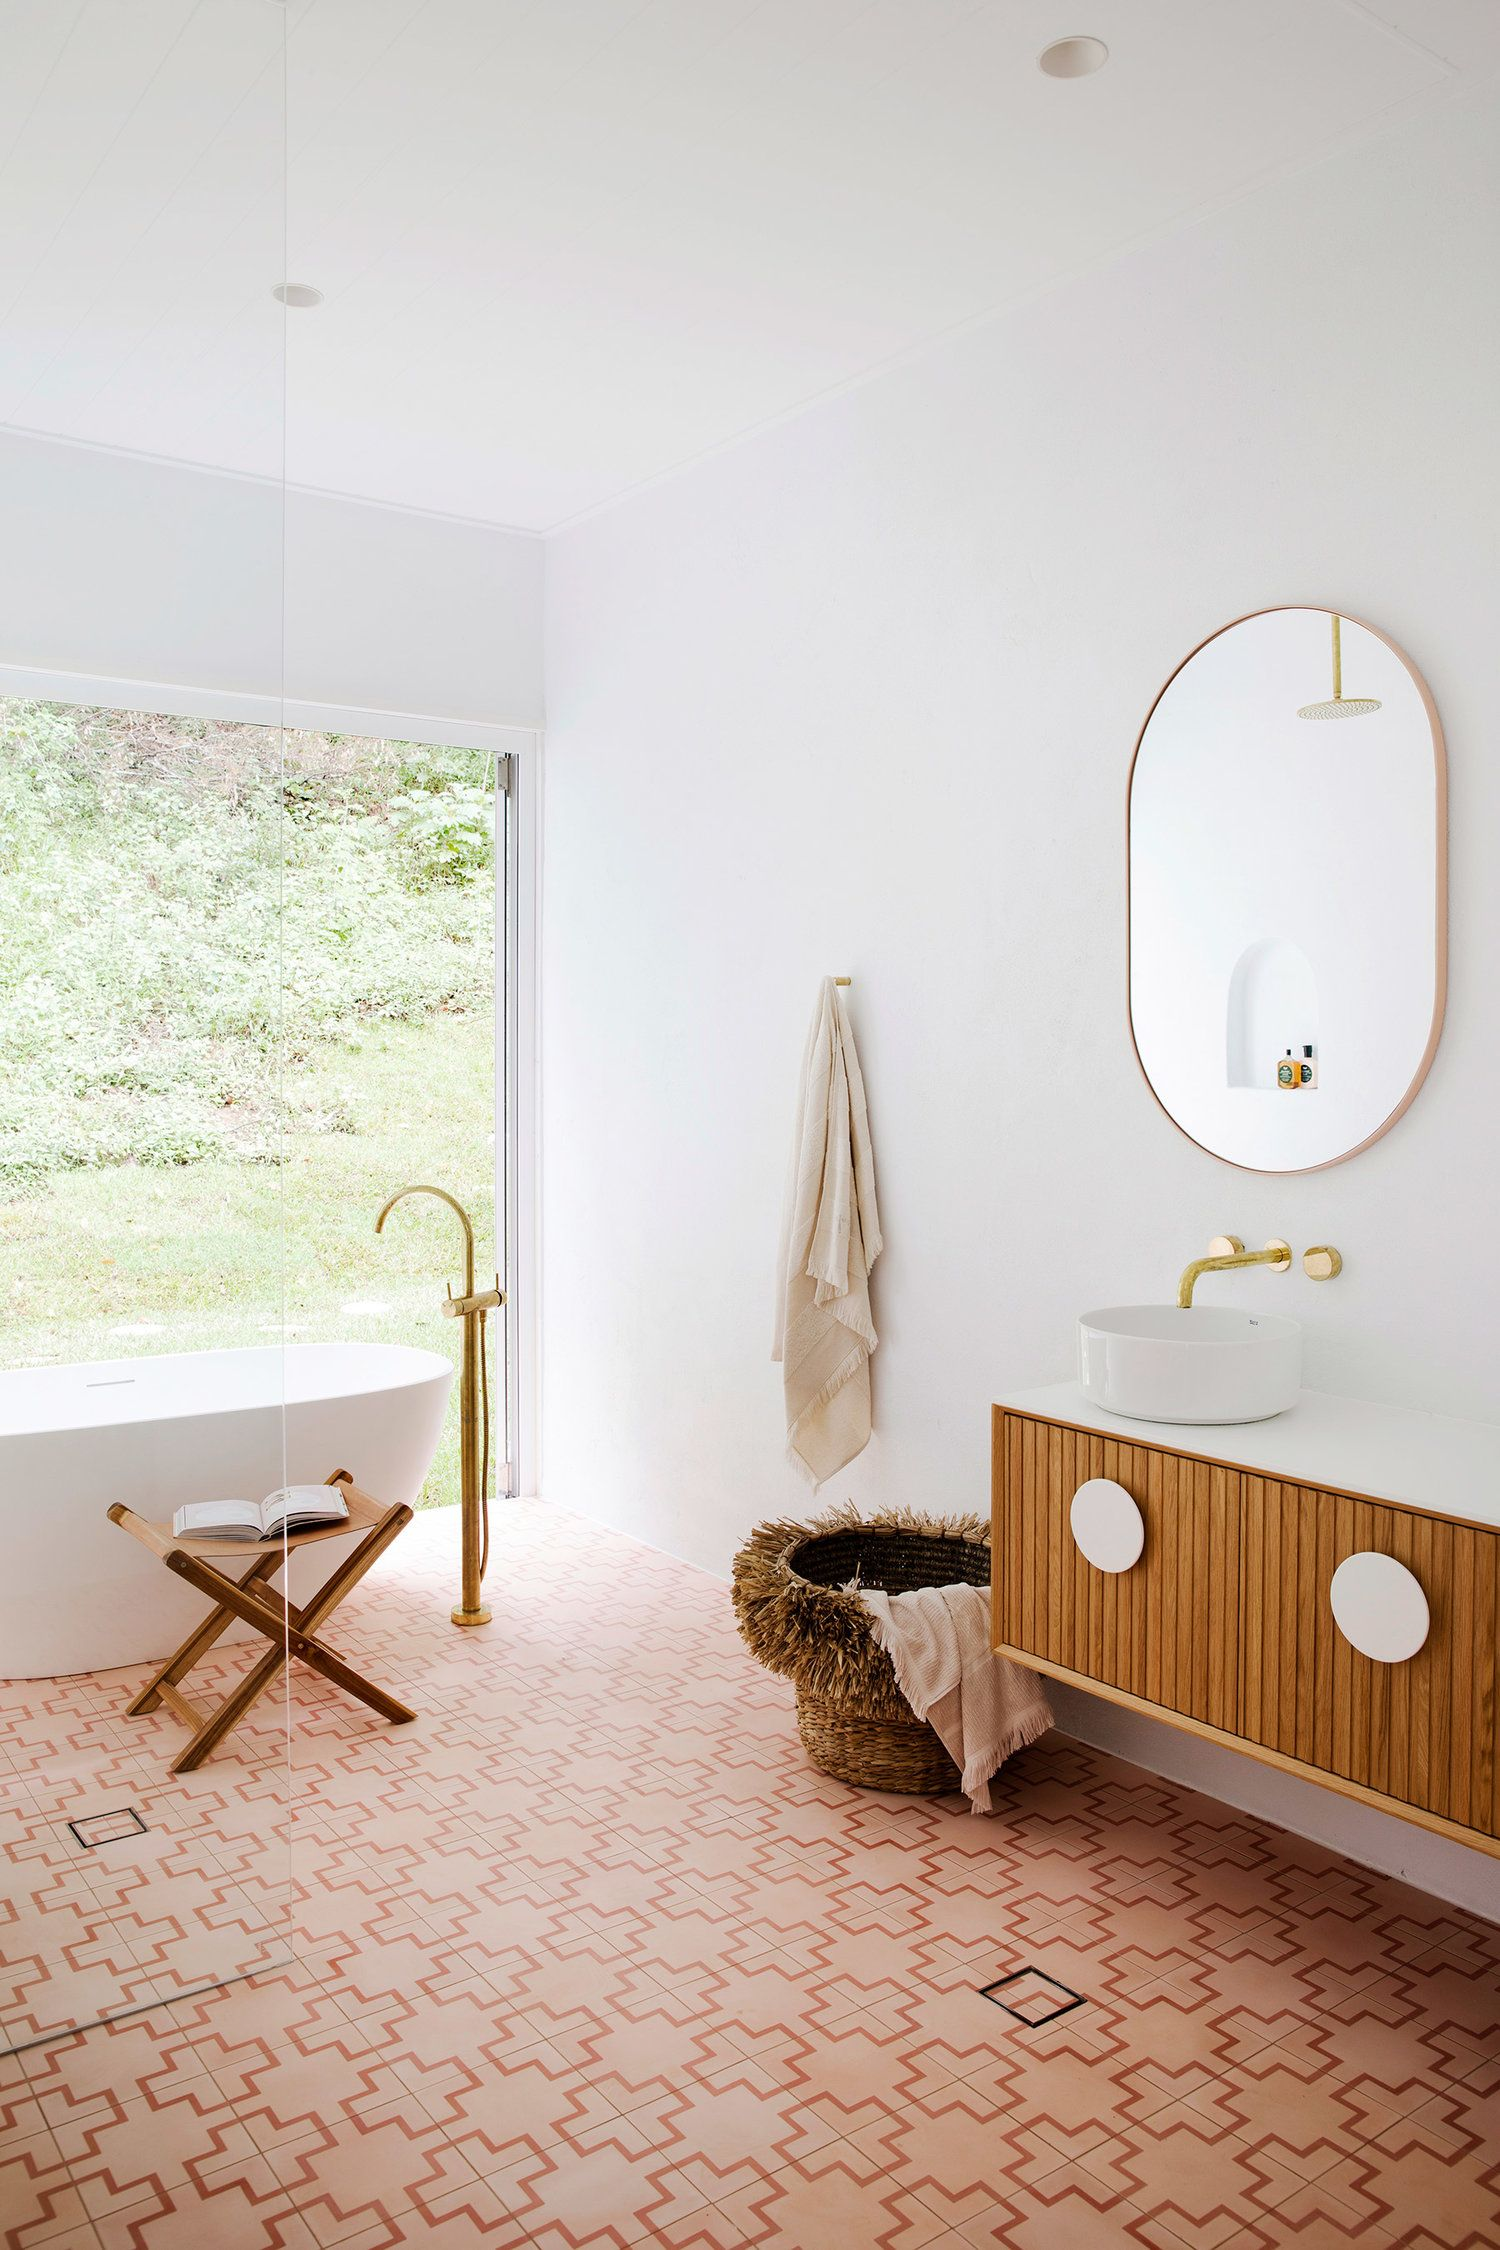 bathroom, orange patterned floor, white wall, wooden floating cabinet with white top, white round sink, ovale mirror, white tub, golden faucet